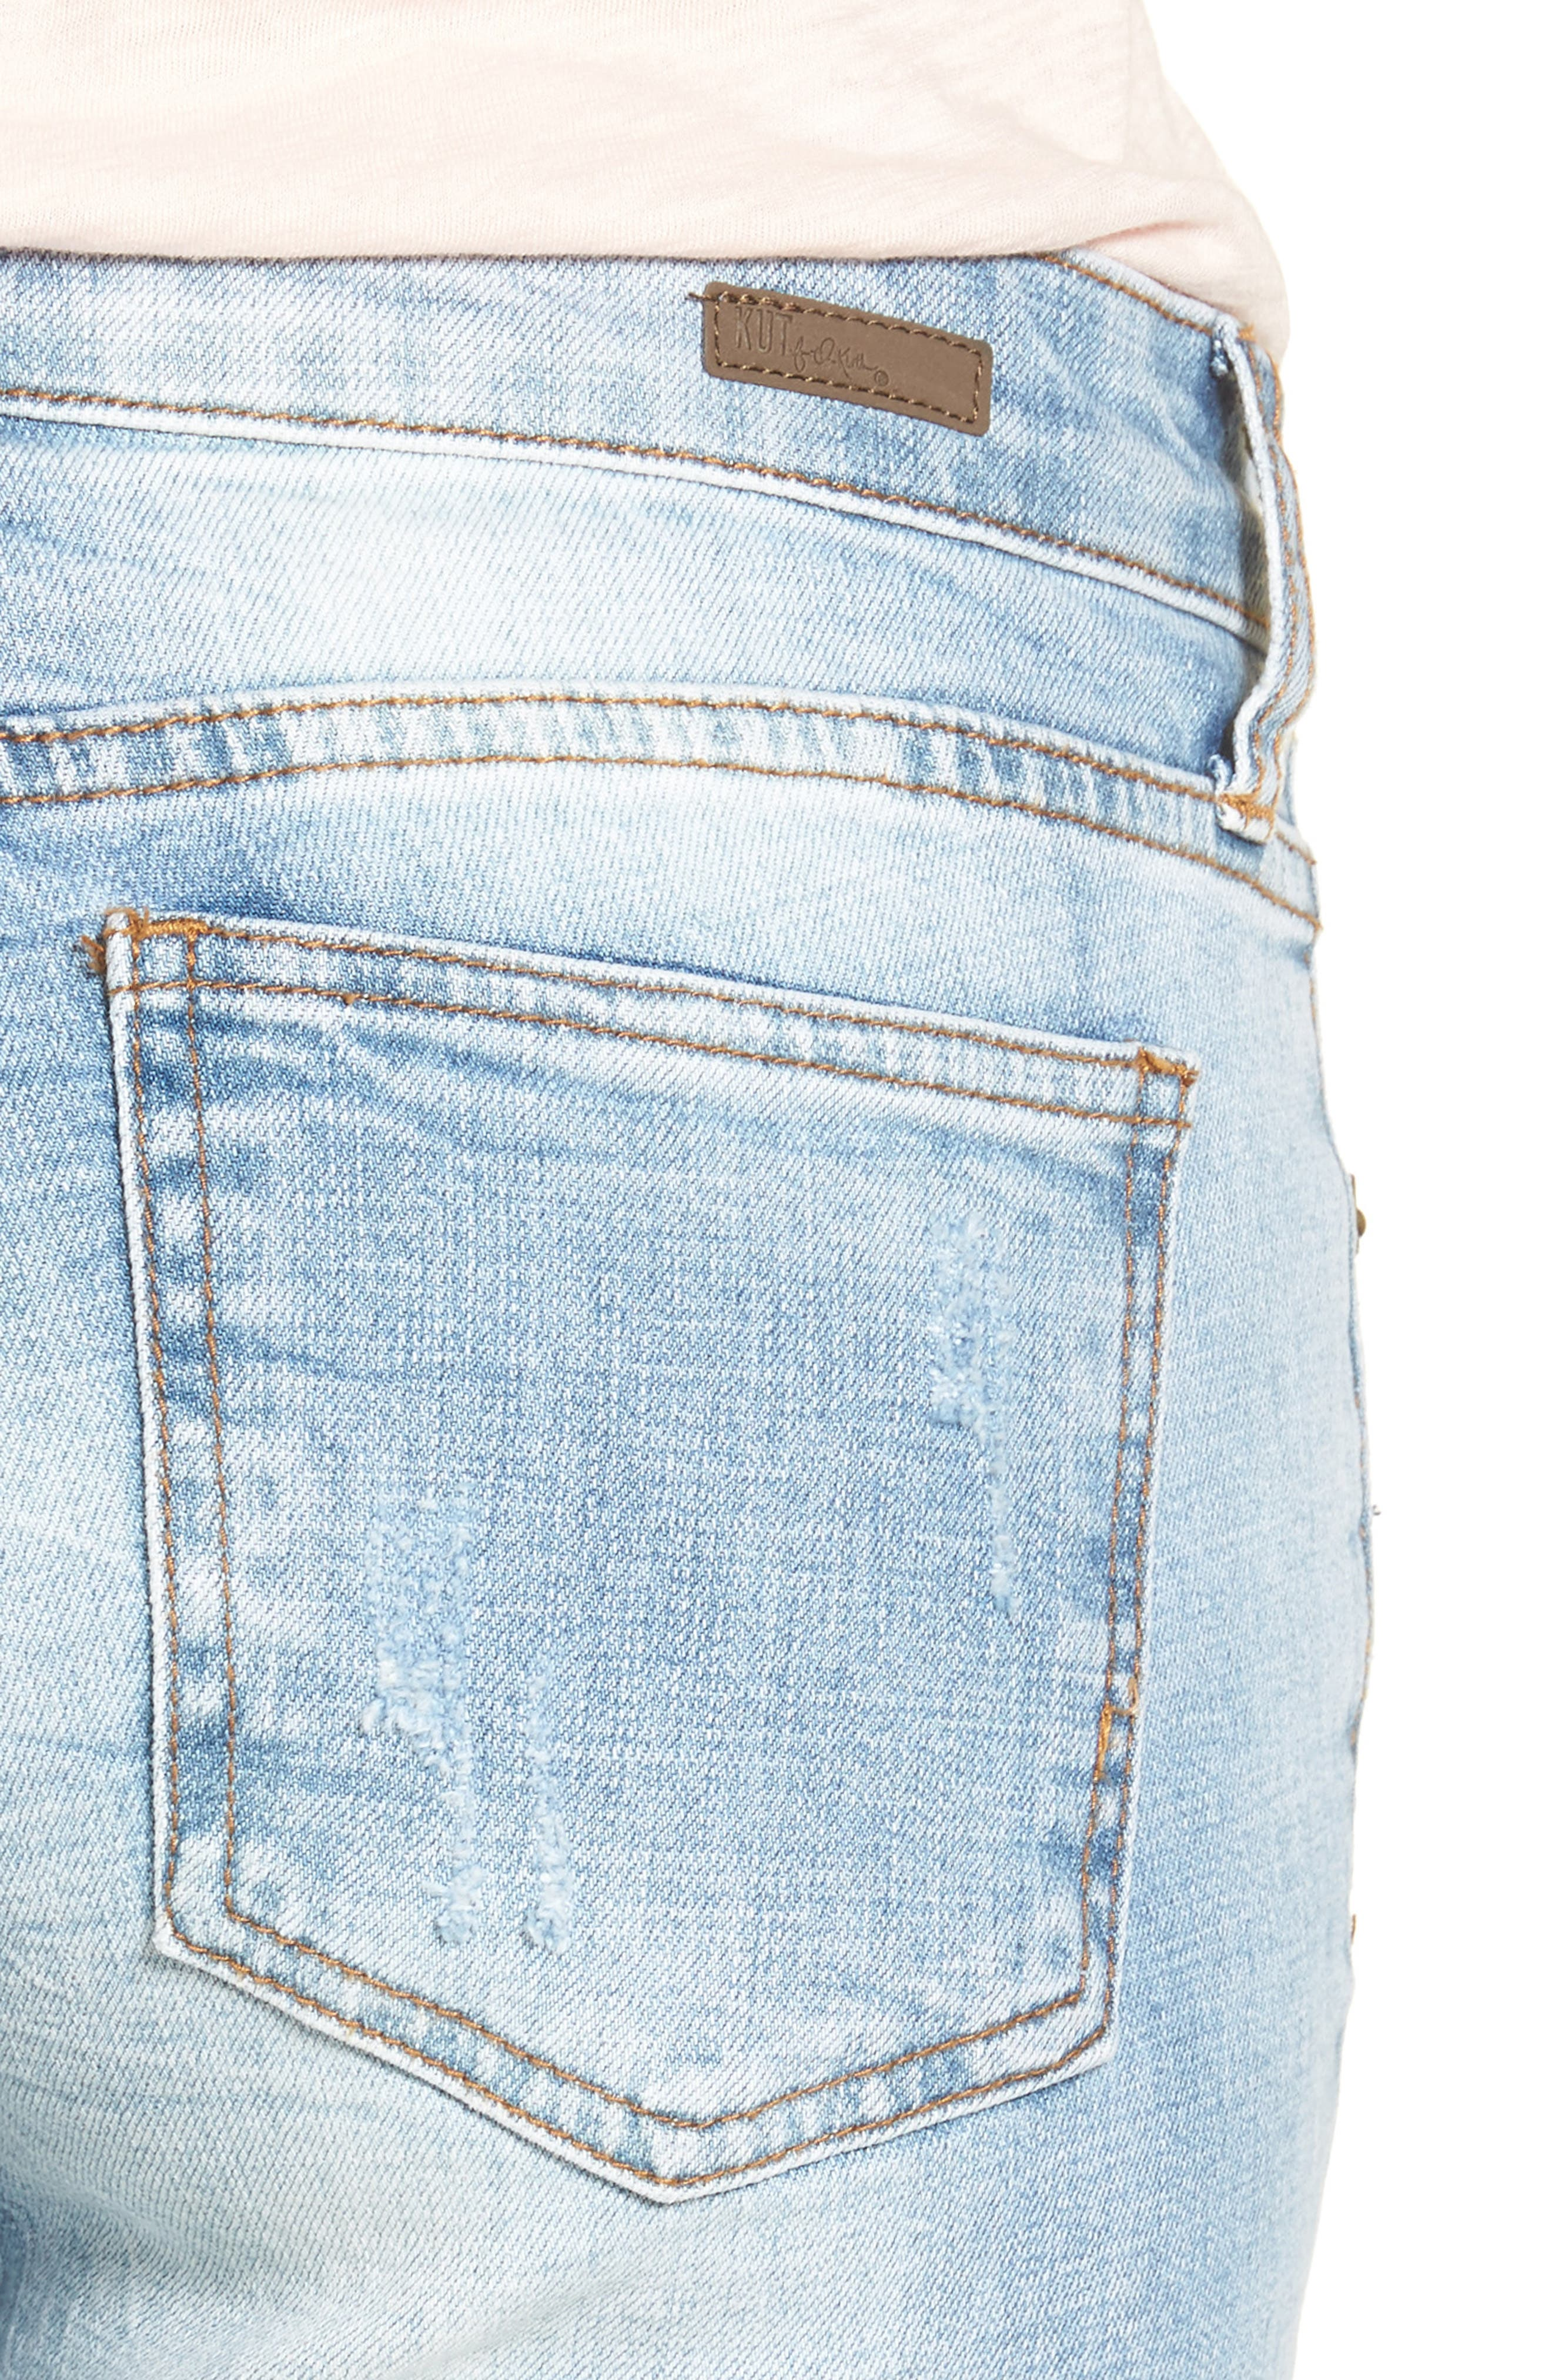 Alternate Image 4  - KUT from the Kloth Catherine Distressed Boyfriend Jeans (Hail)